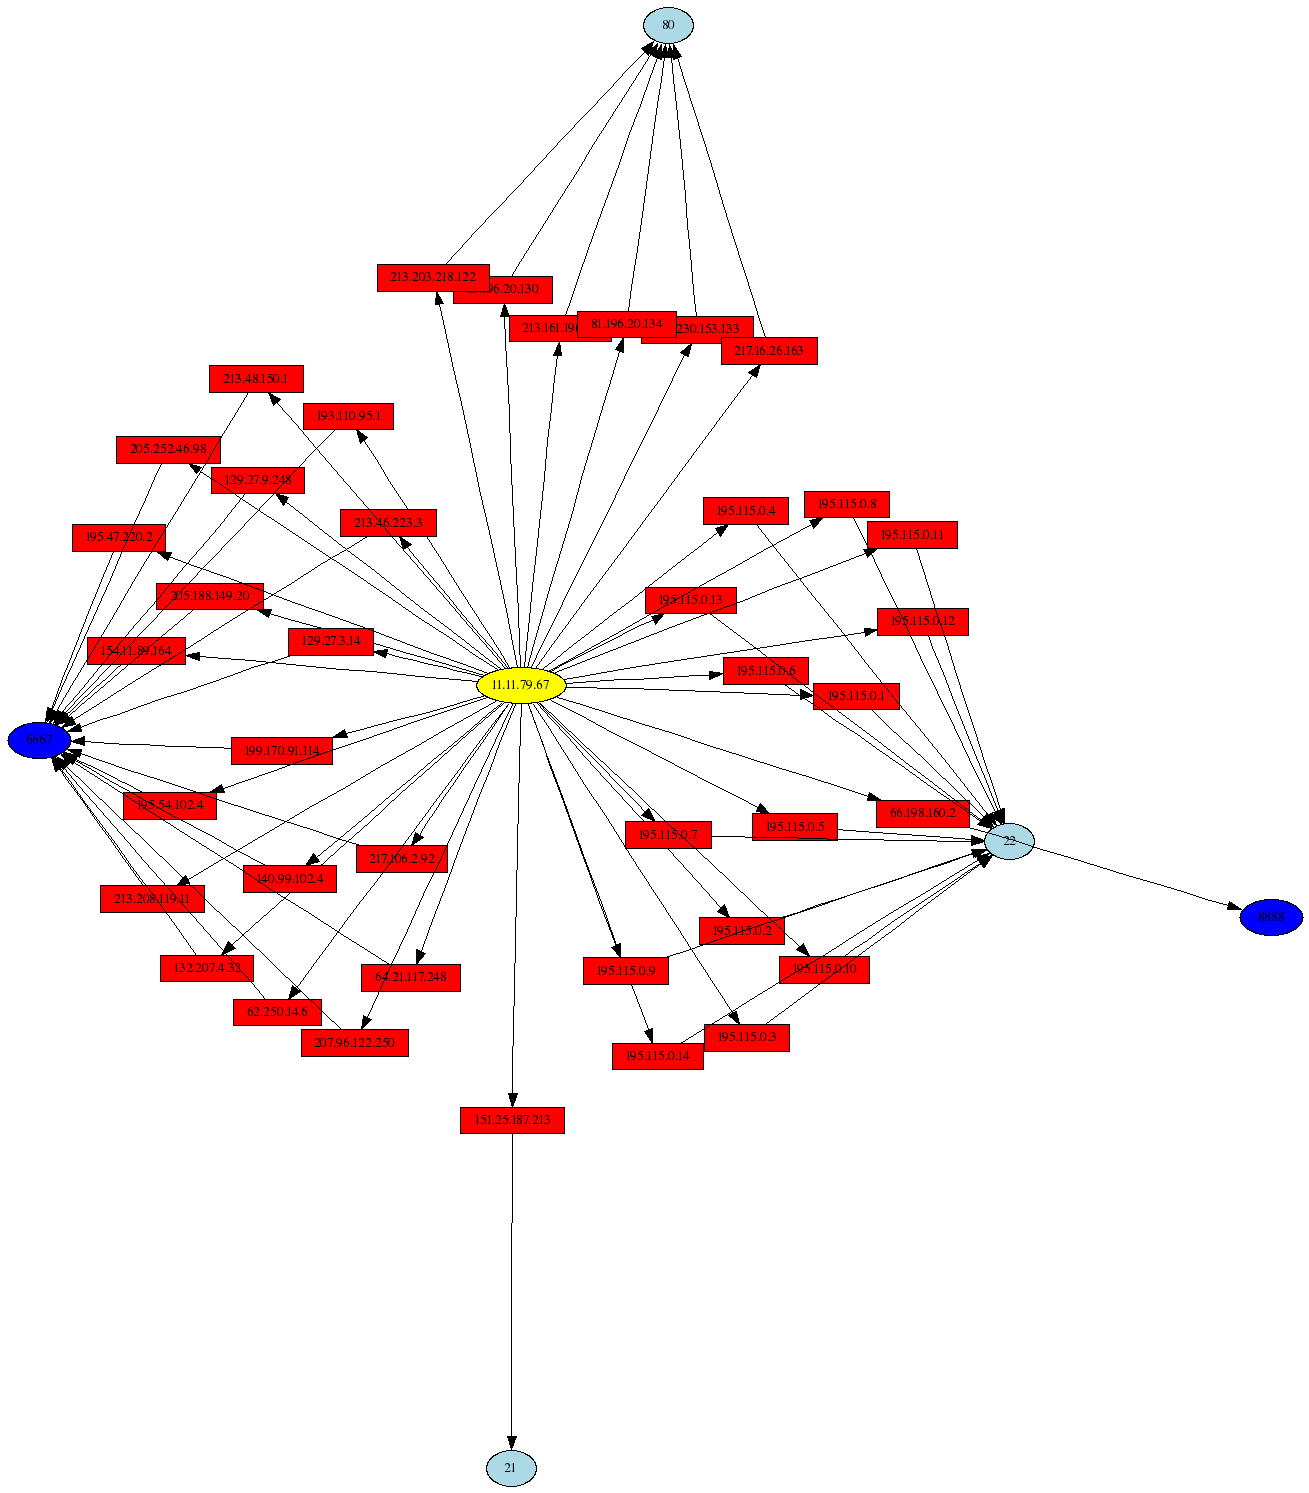 psad outbound connections visualization